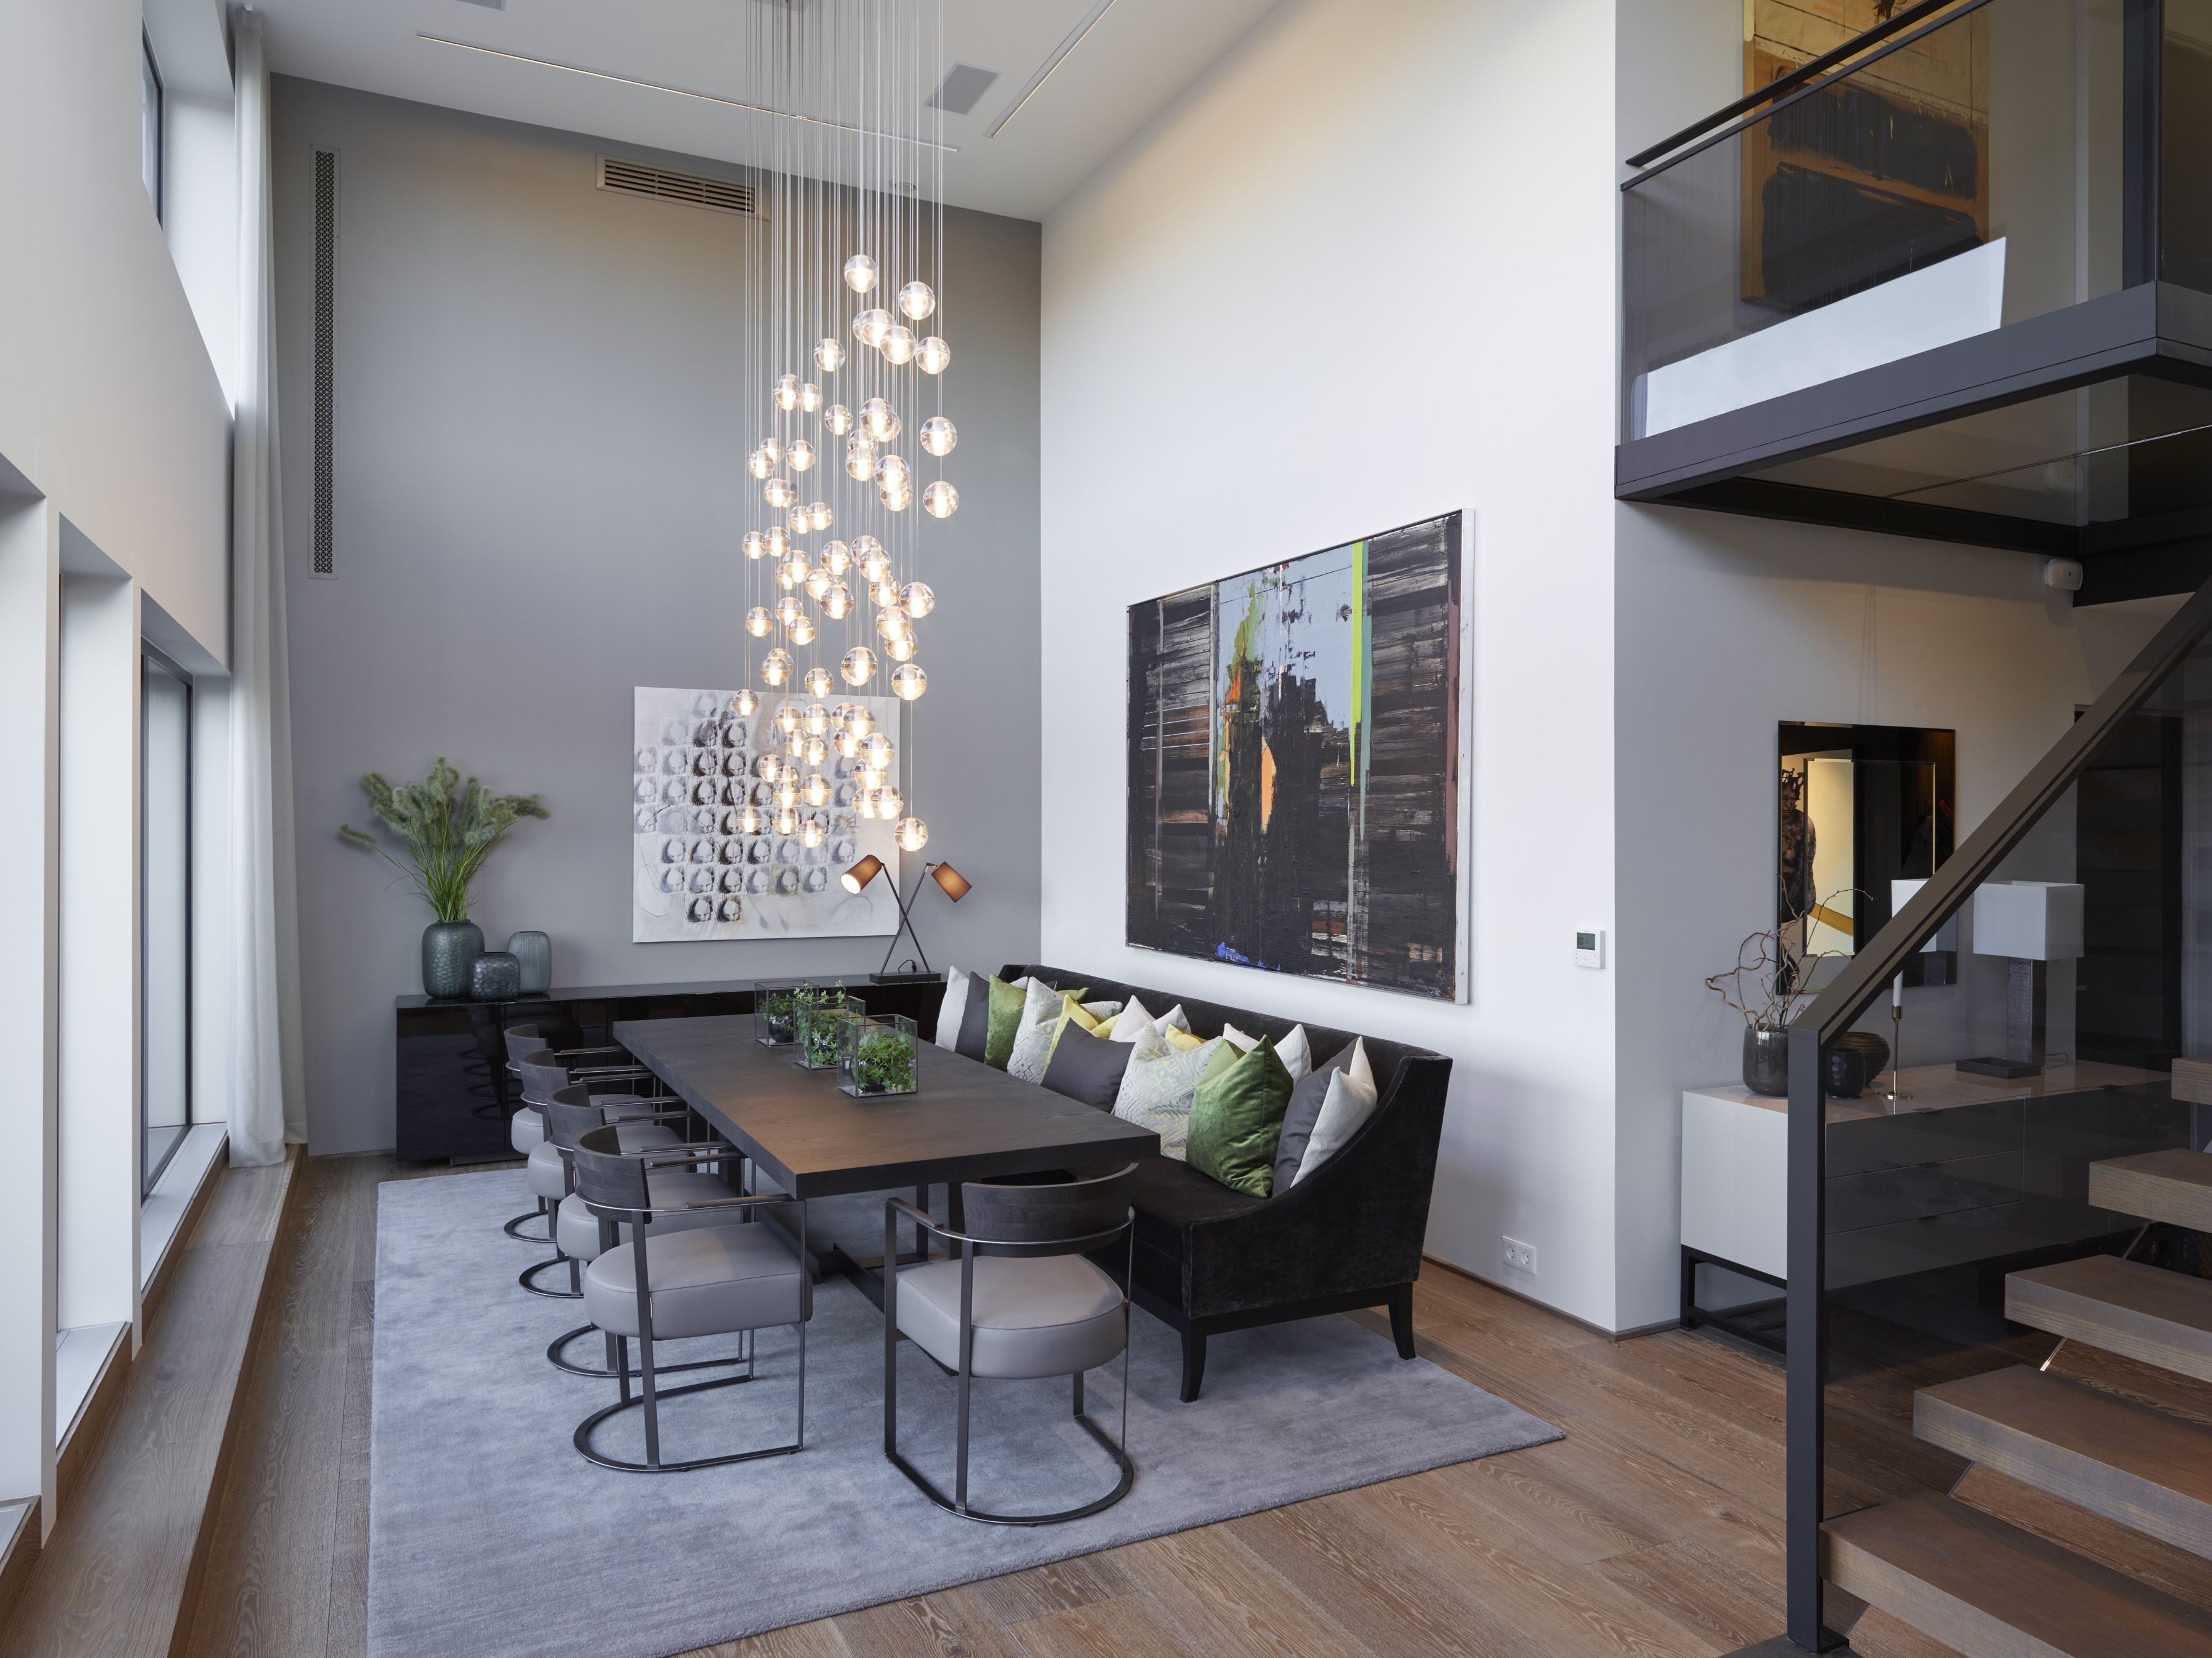 Norwegian Interiors penthouse, oslo - designednorwegian interior architect firm